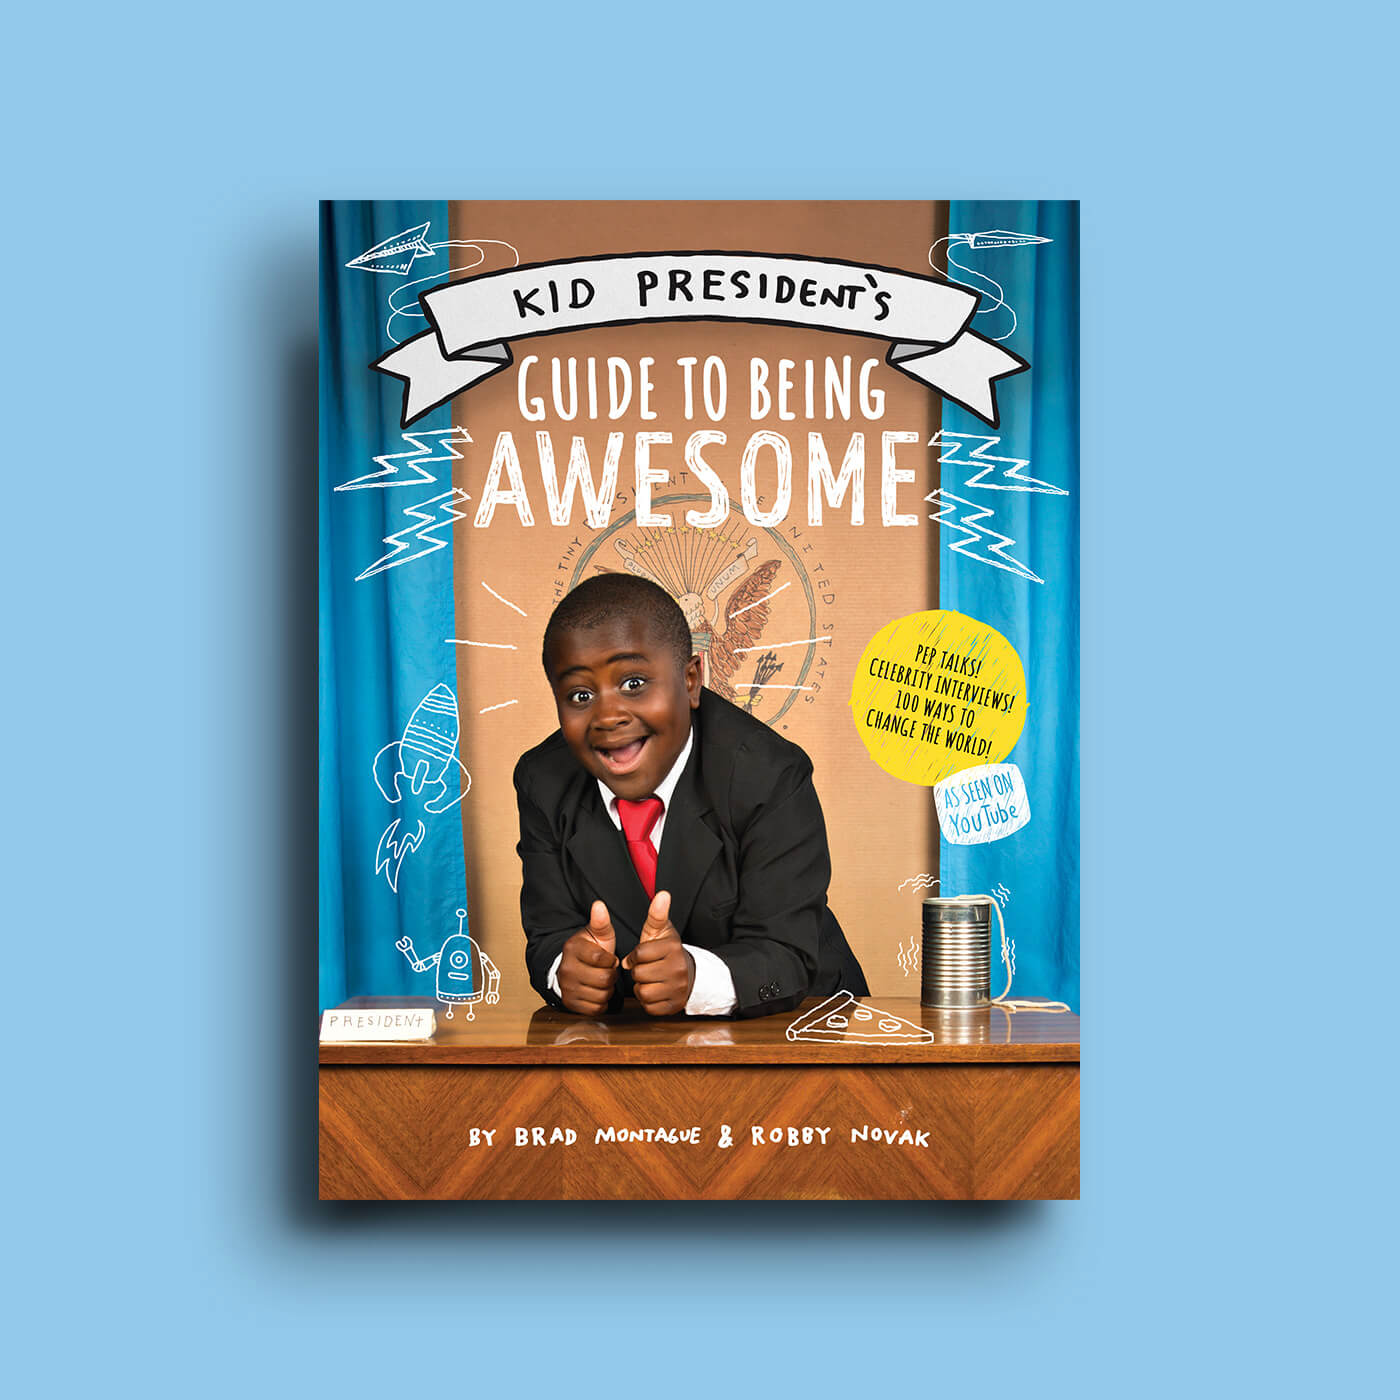 Kid President - The YouTube sensation brings his message of hope, and how kids can change the world, in this New York Times Best-Selling book.View Project →